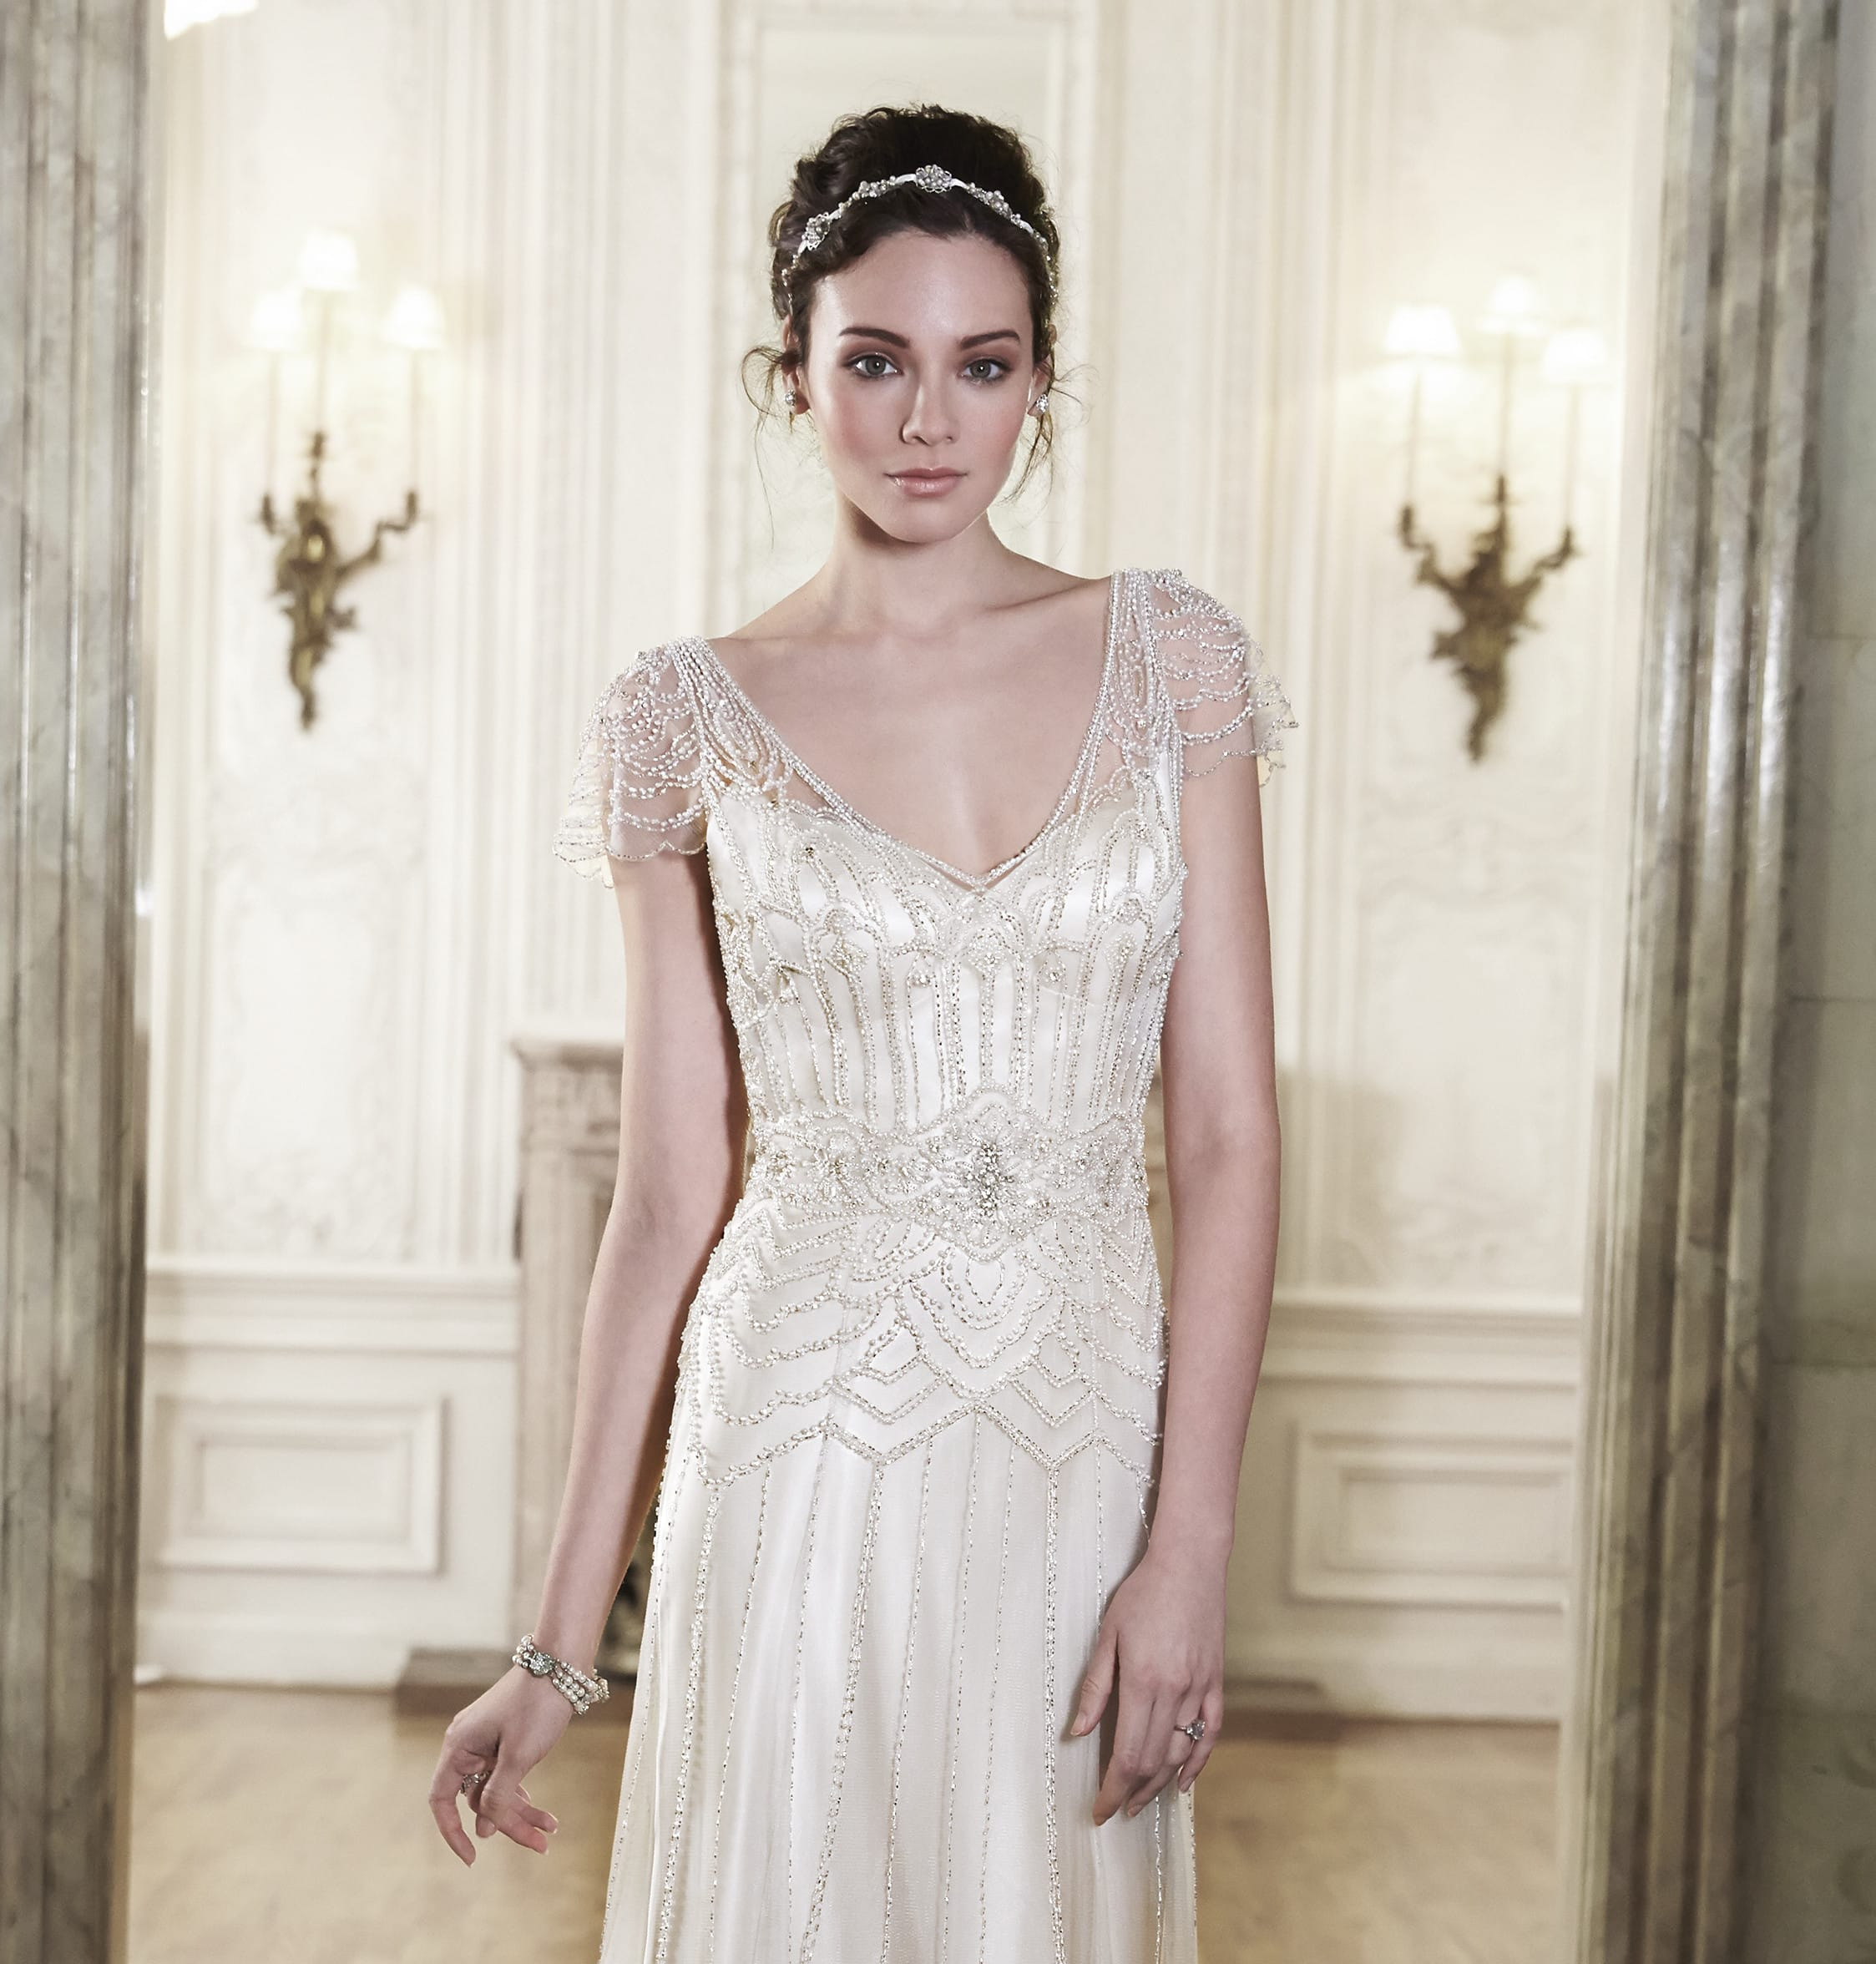 Great Gatsby Inspired Wedding Dresses To Fall In Love With Love